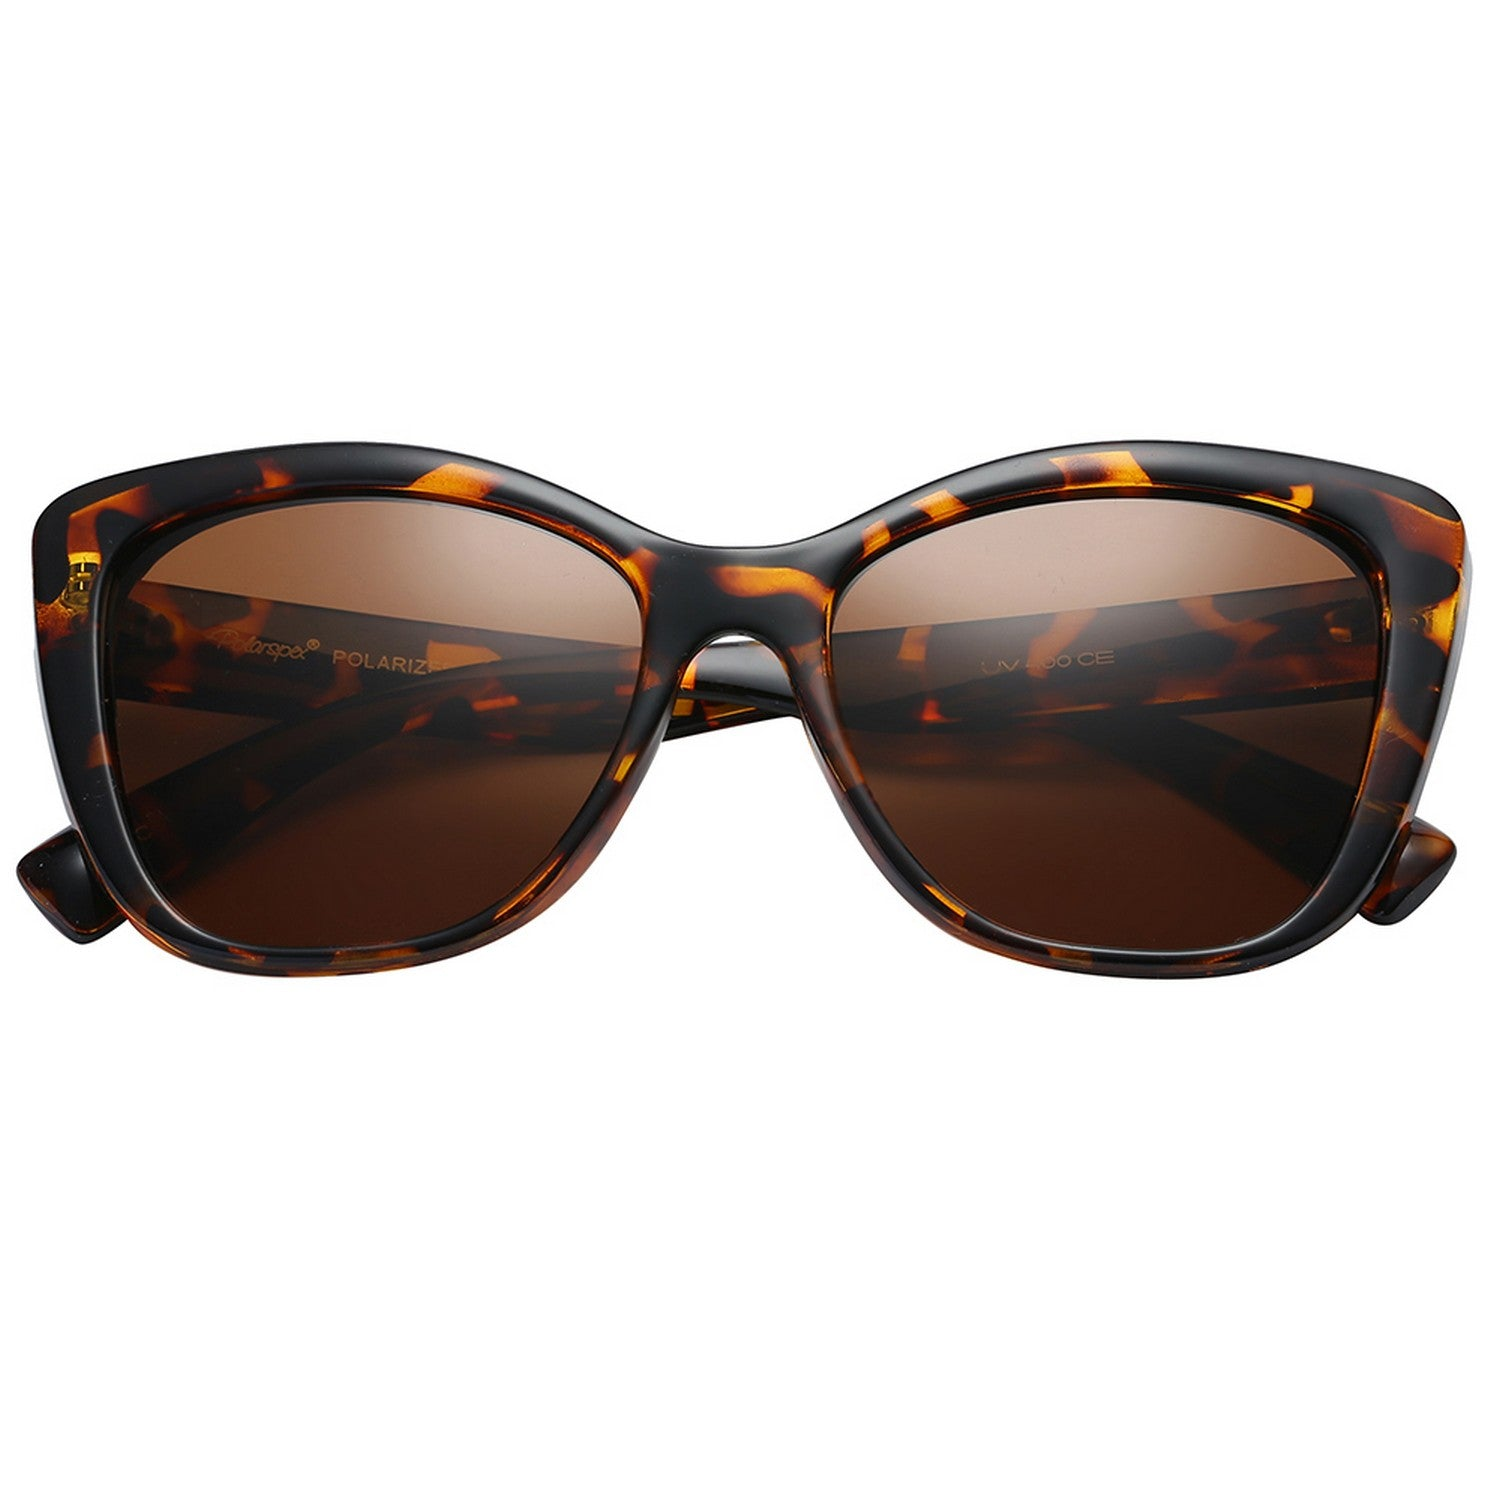 Polarspex Polarized Jackie-O Cat Eyes Style Sunglasses with Brown Tortoise Frames and Polarized Brown Lenses for Women